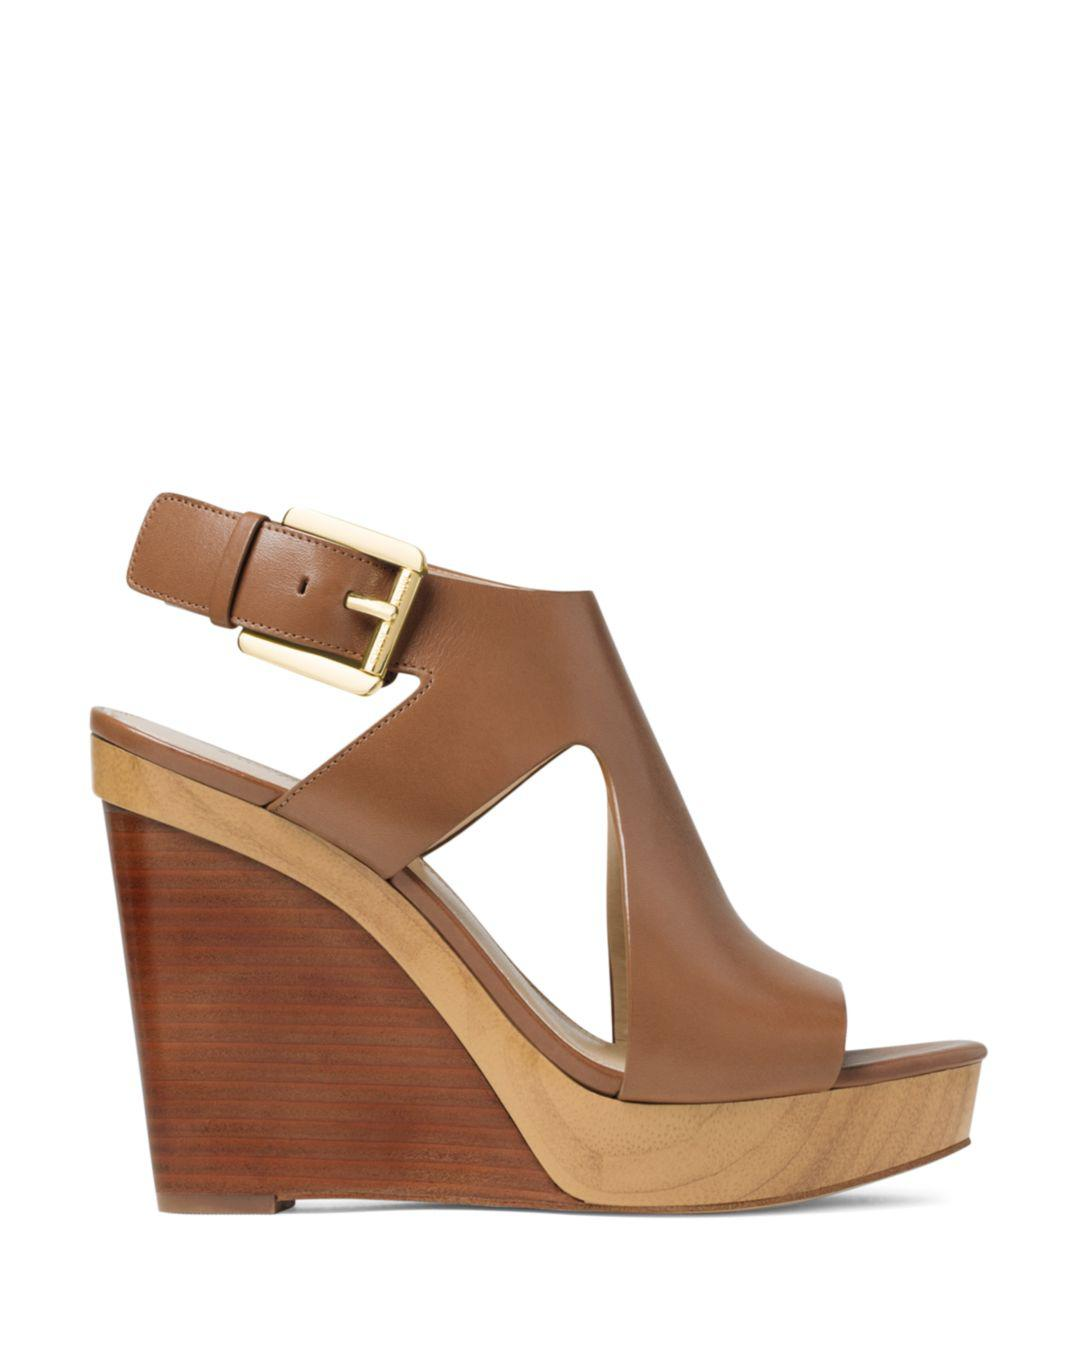 59f46be69e1 Lyst - Michael Michael Kors Women s Josephine Leather Platform Wedge Sandals  in Brown